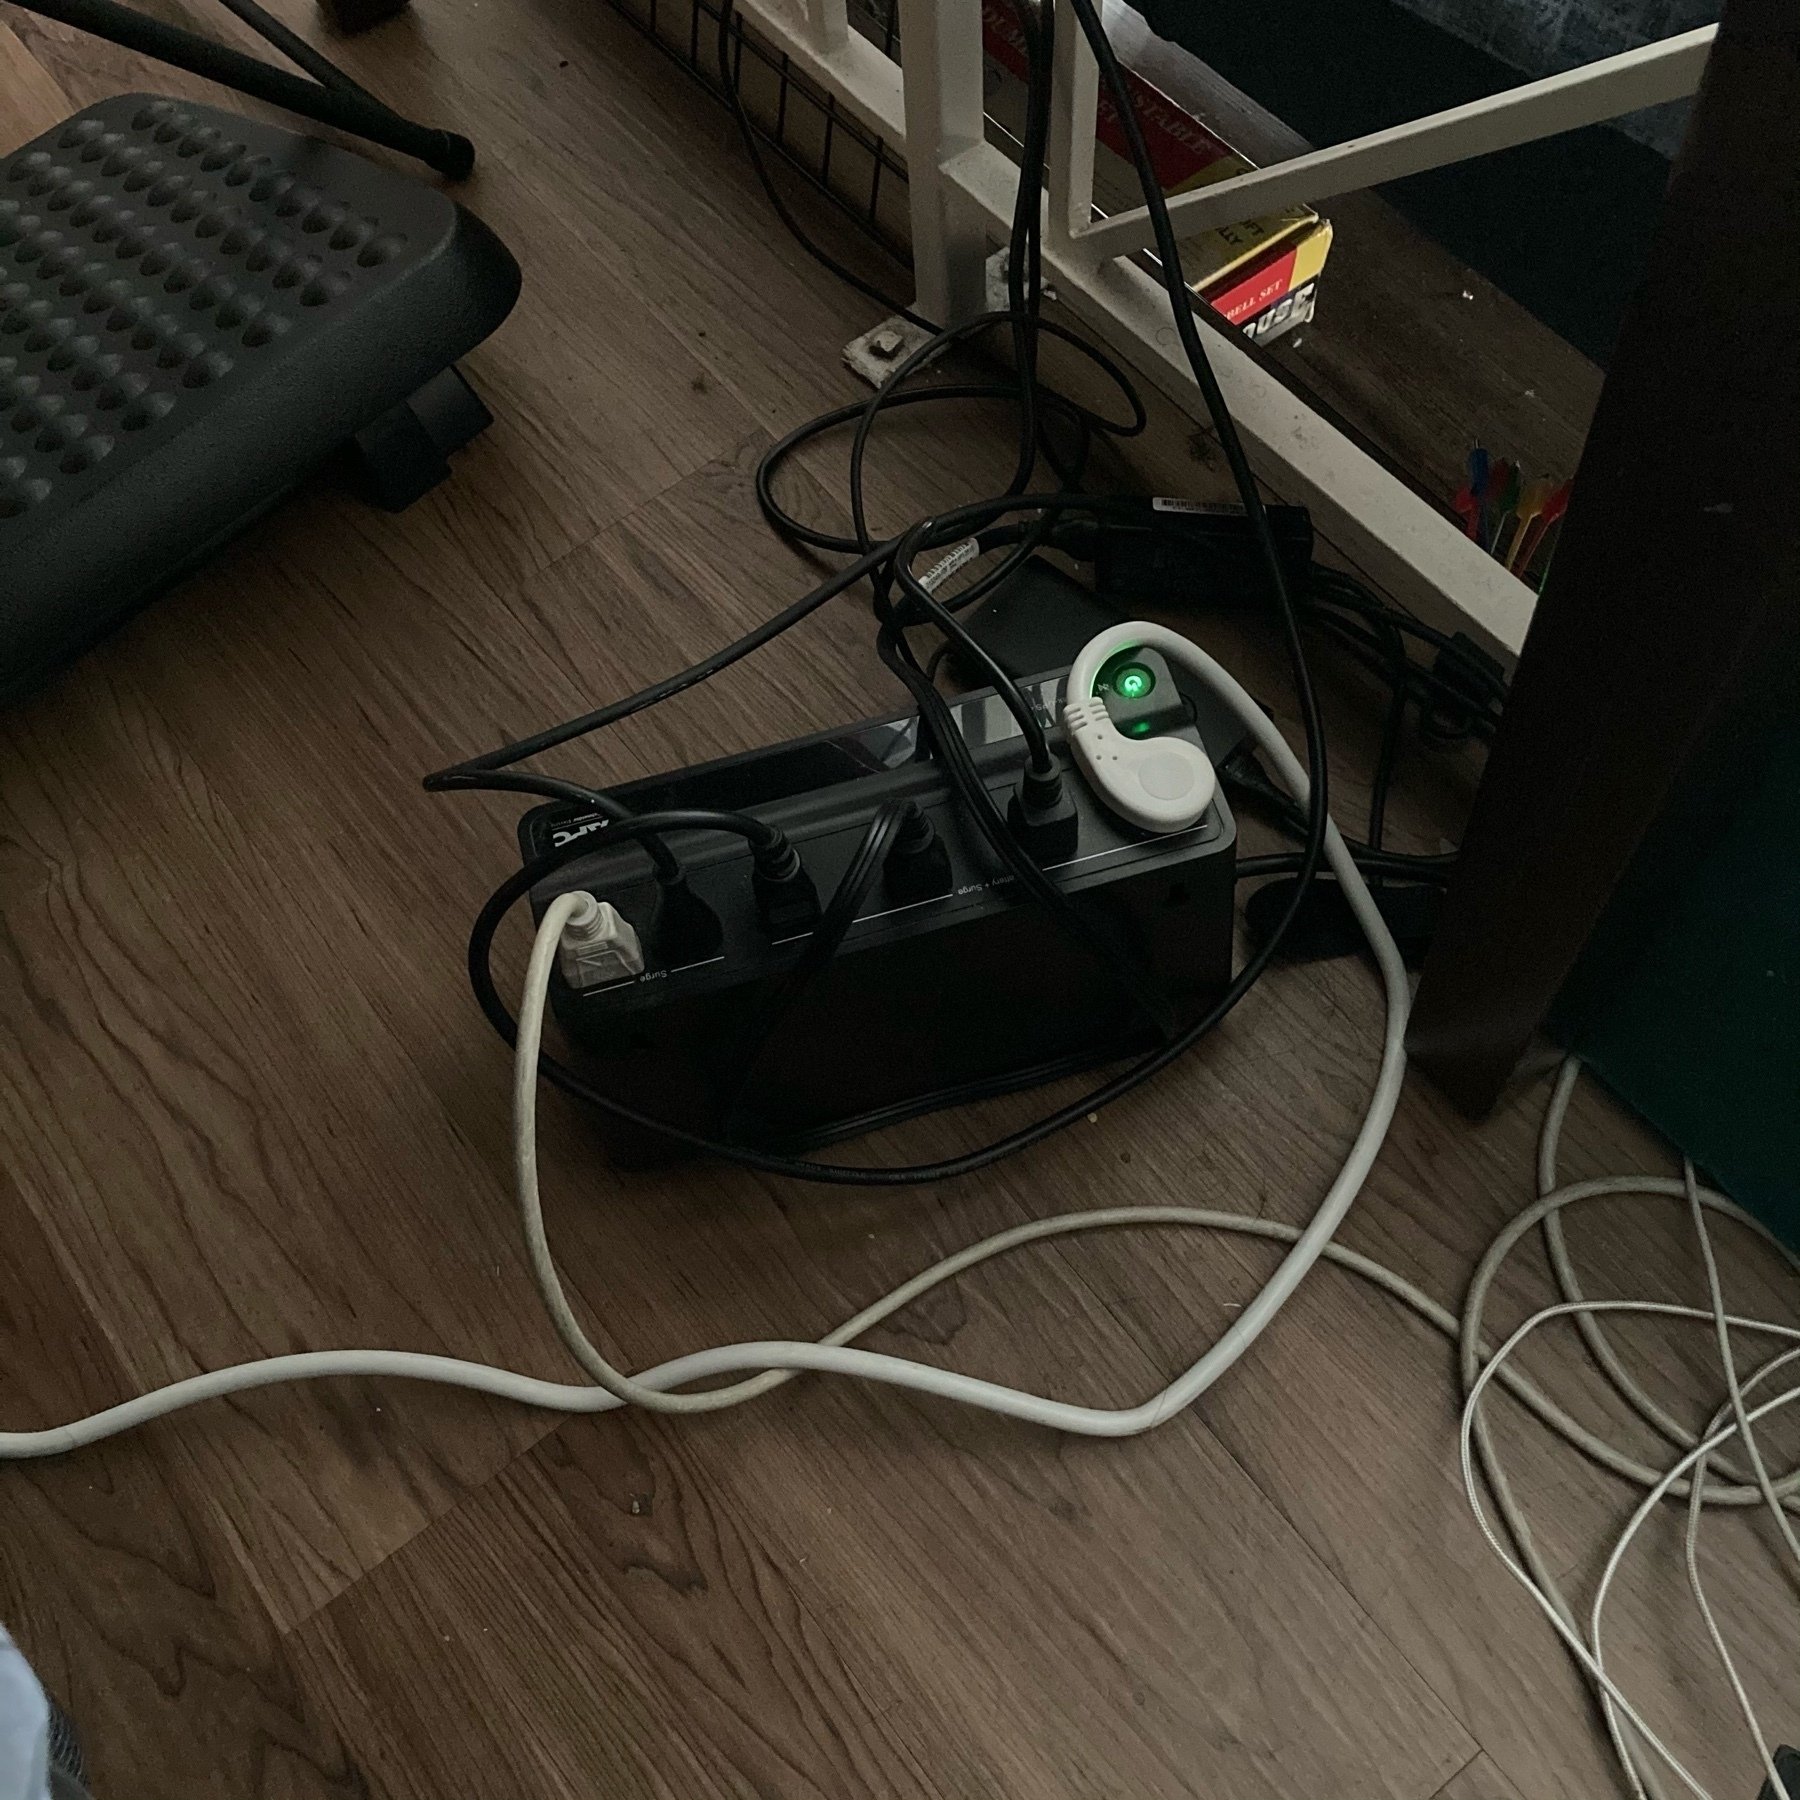 UPS connected to an extention cord.